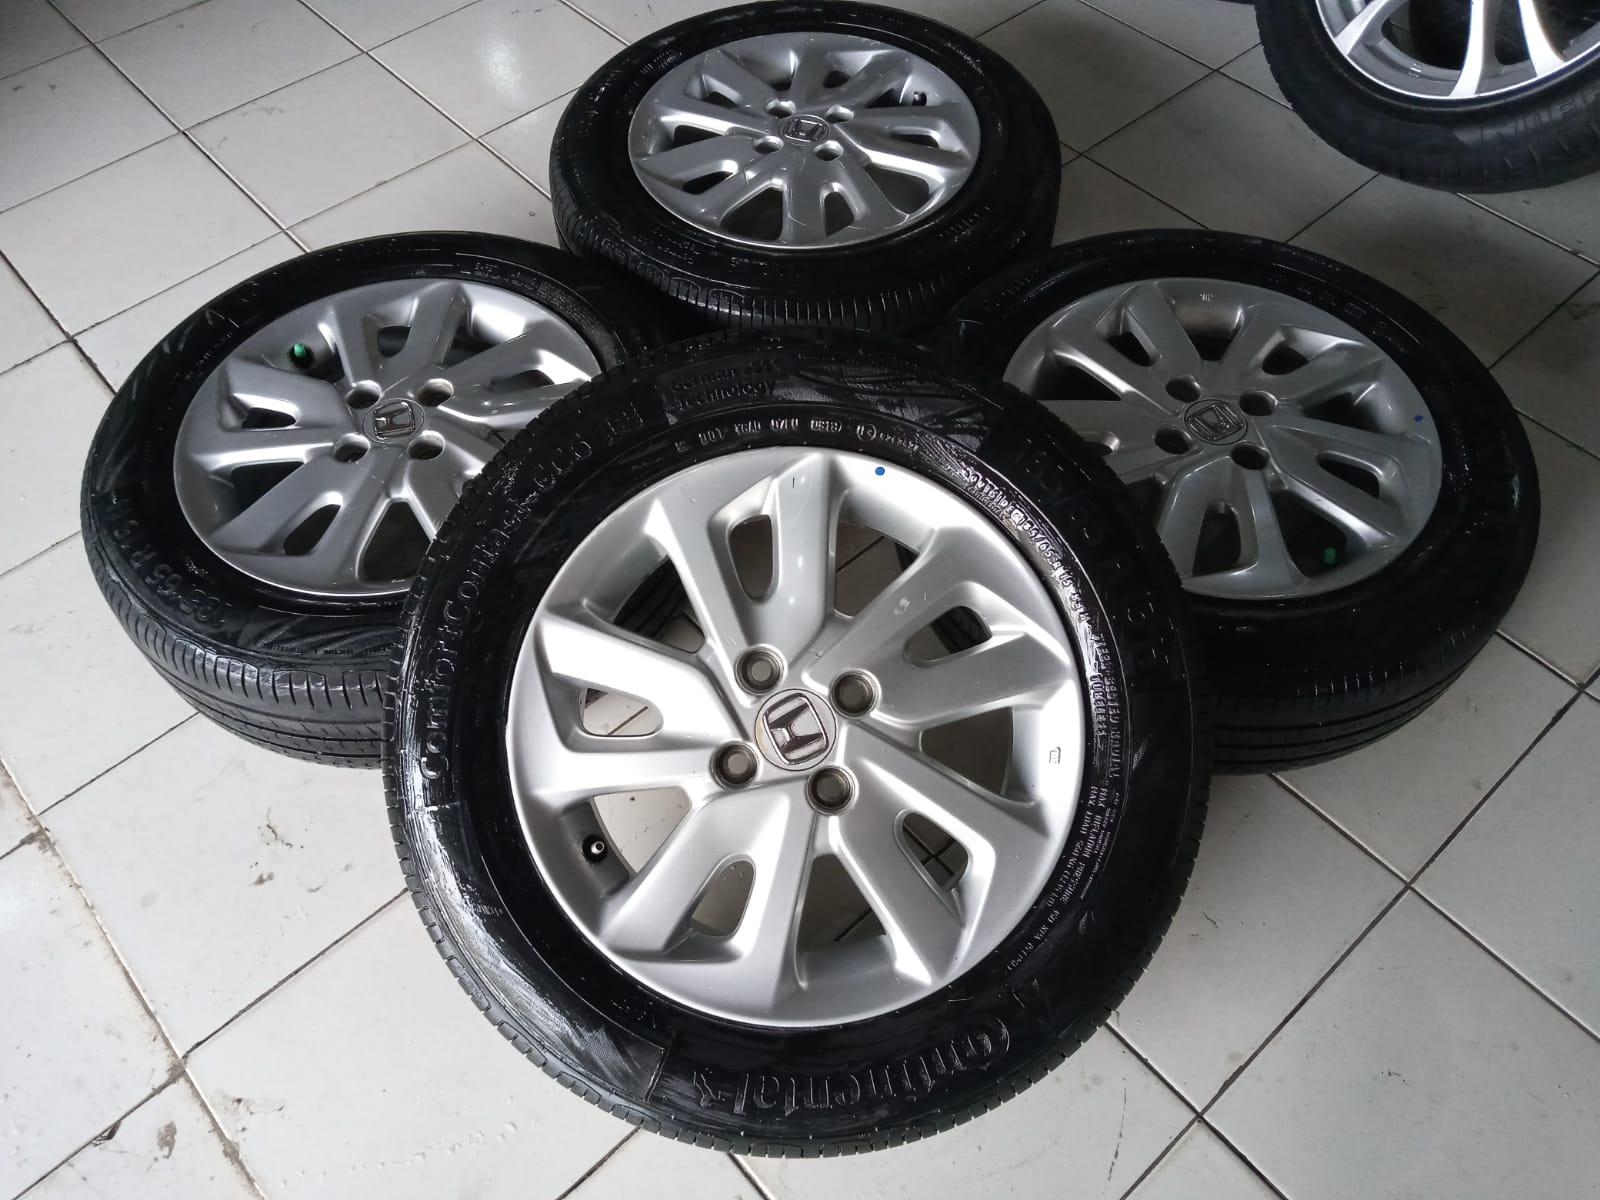 Jual velg second Mobilio ring 15+ban Continental